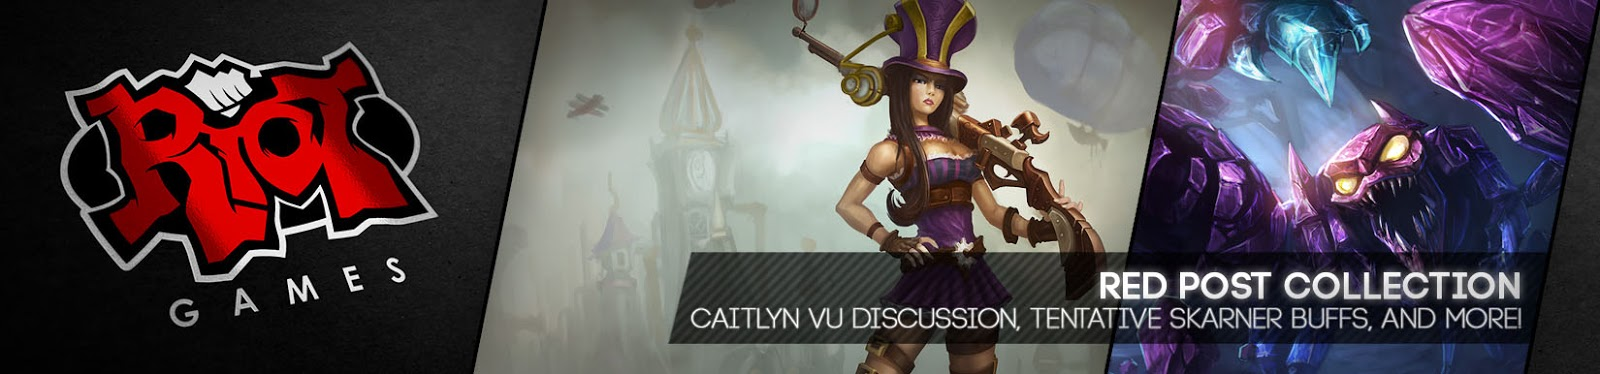 Surrender At 20 Red Post Collection Caitlyn Vu Discussion Skarner